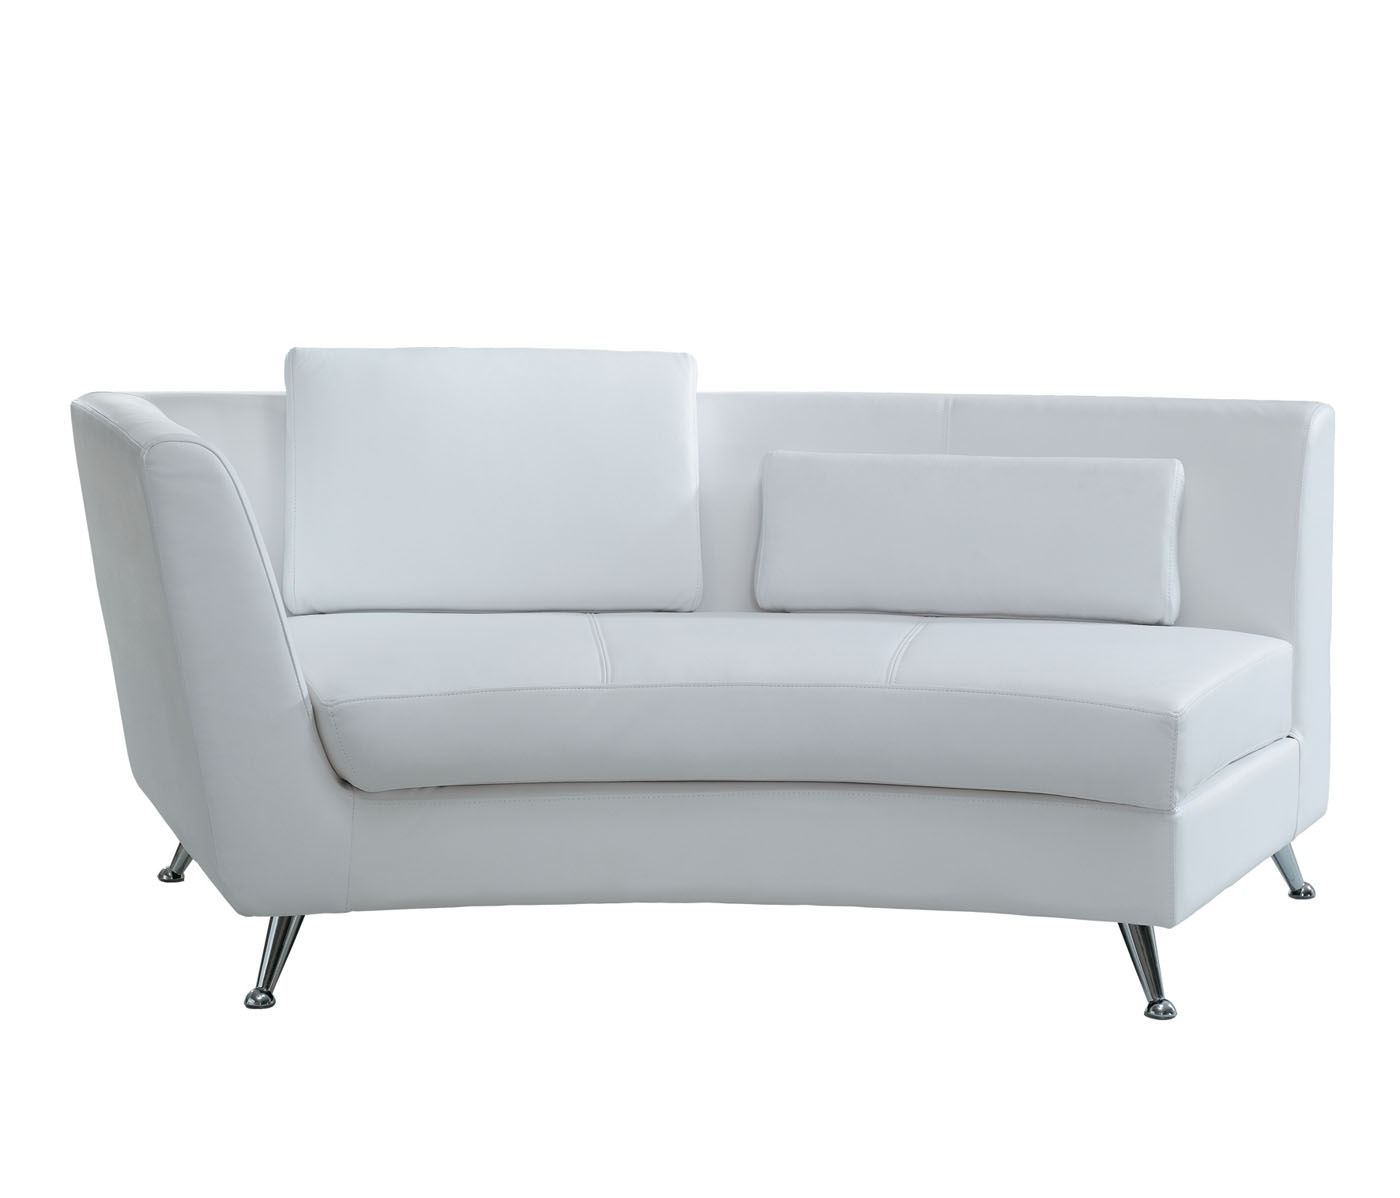 Well Liked Decoration In White Leather Chaise Lounge With White Leather In White Leather Chaise Lounges (View 11 of 15)